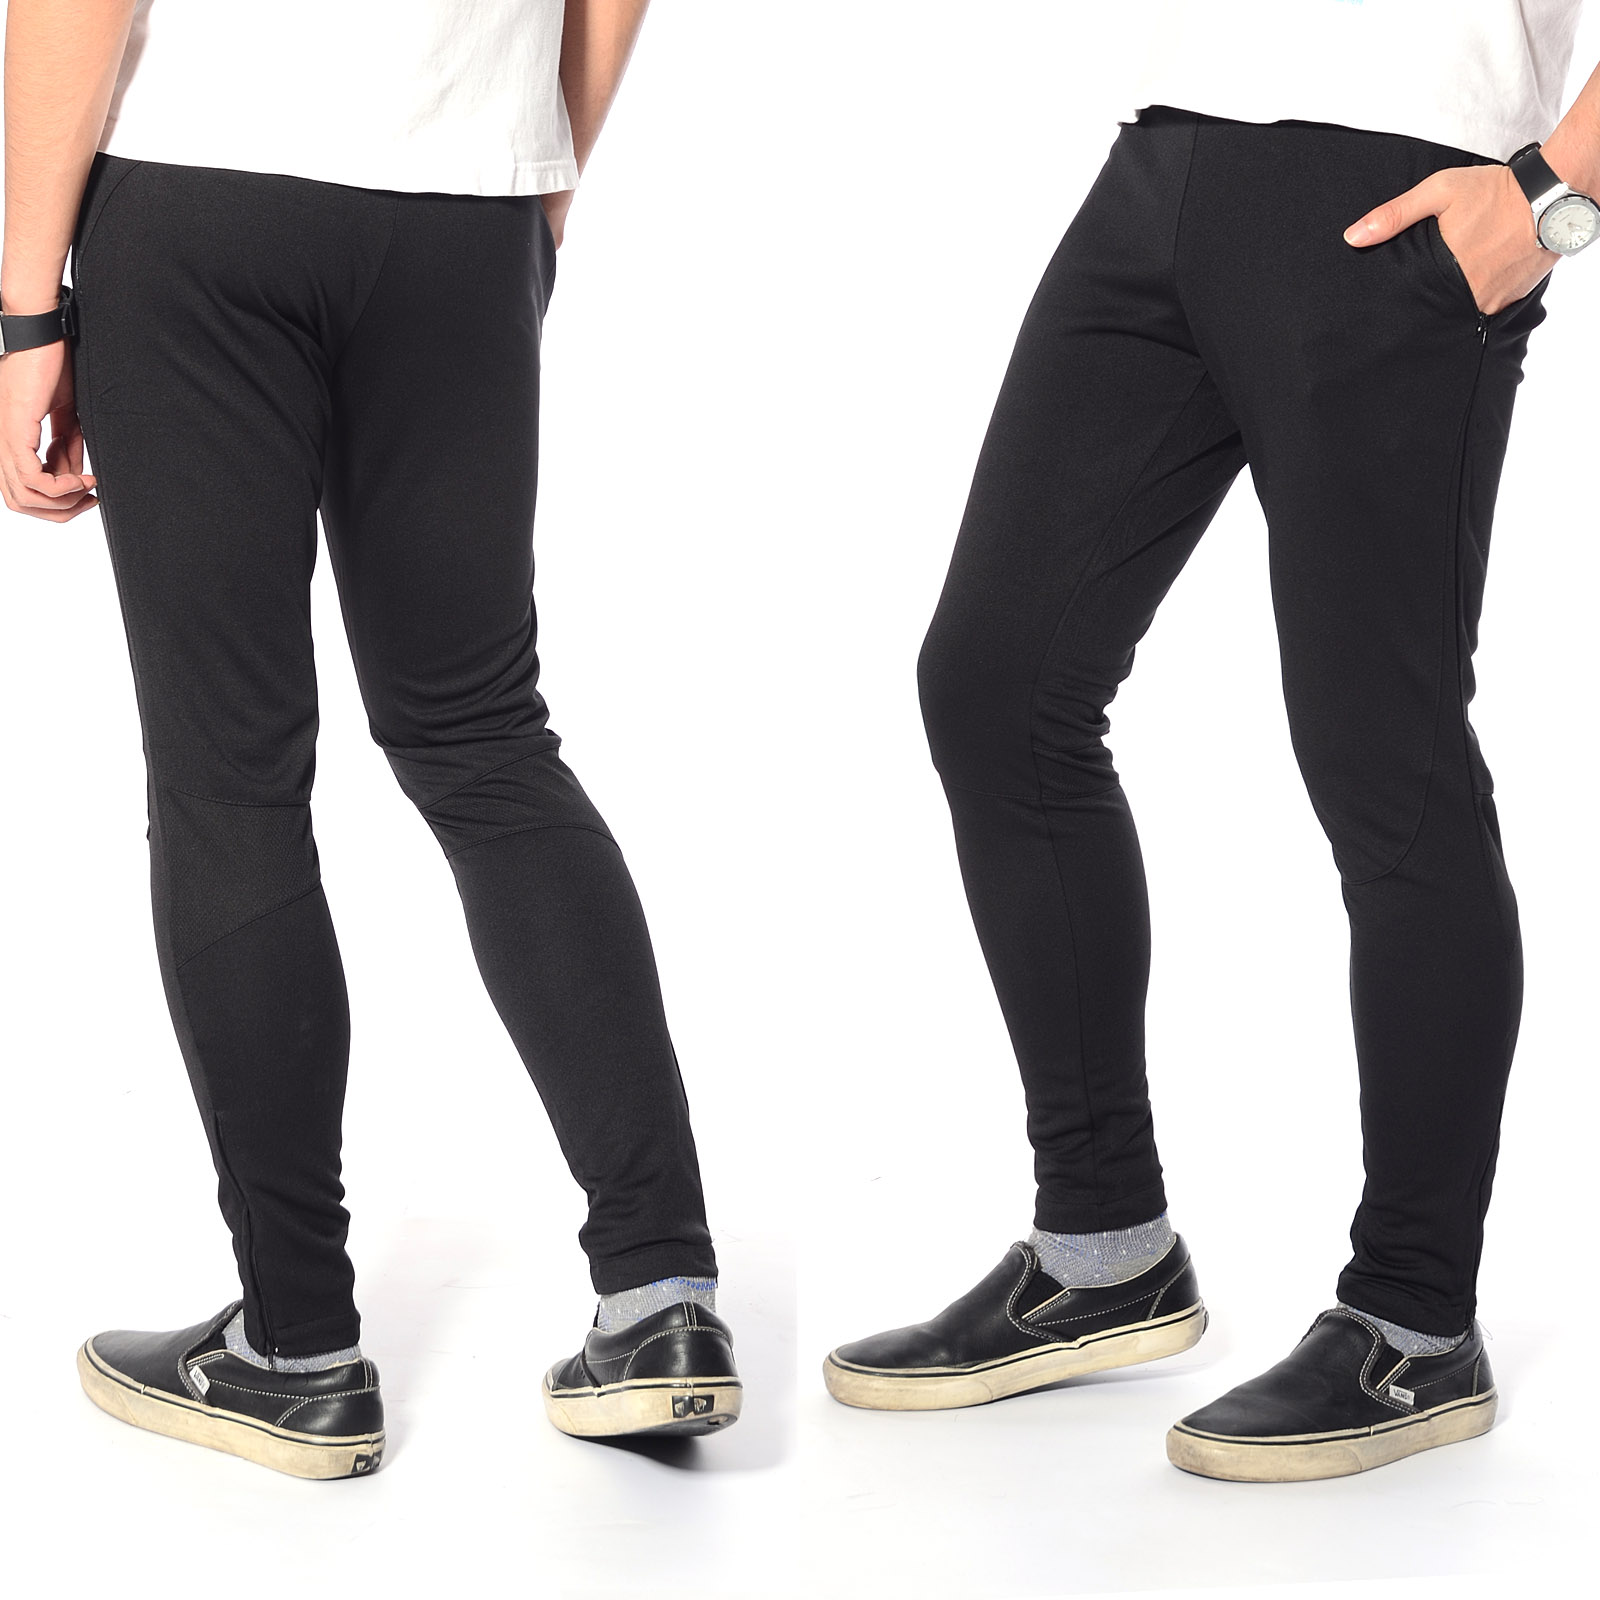 menu0027s skinny soccer pants training sweat sports gym athletic pants trousers QSBFGTR